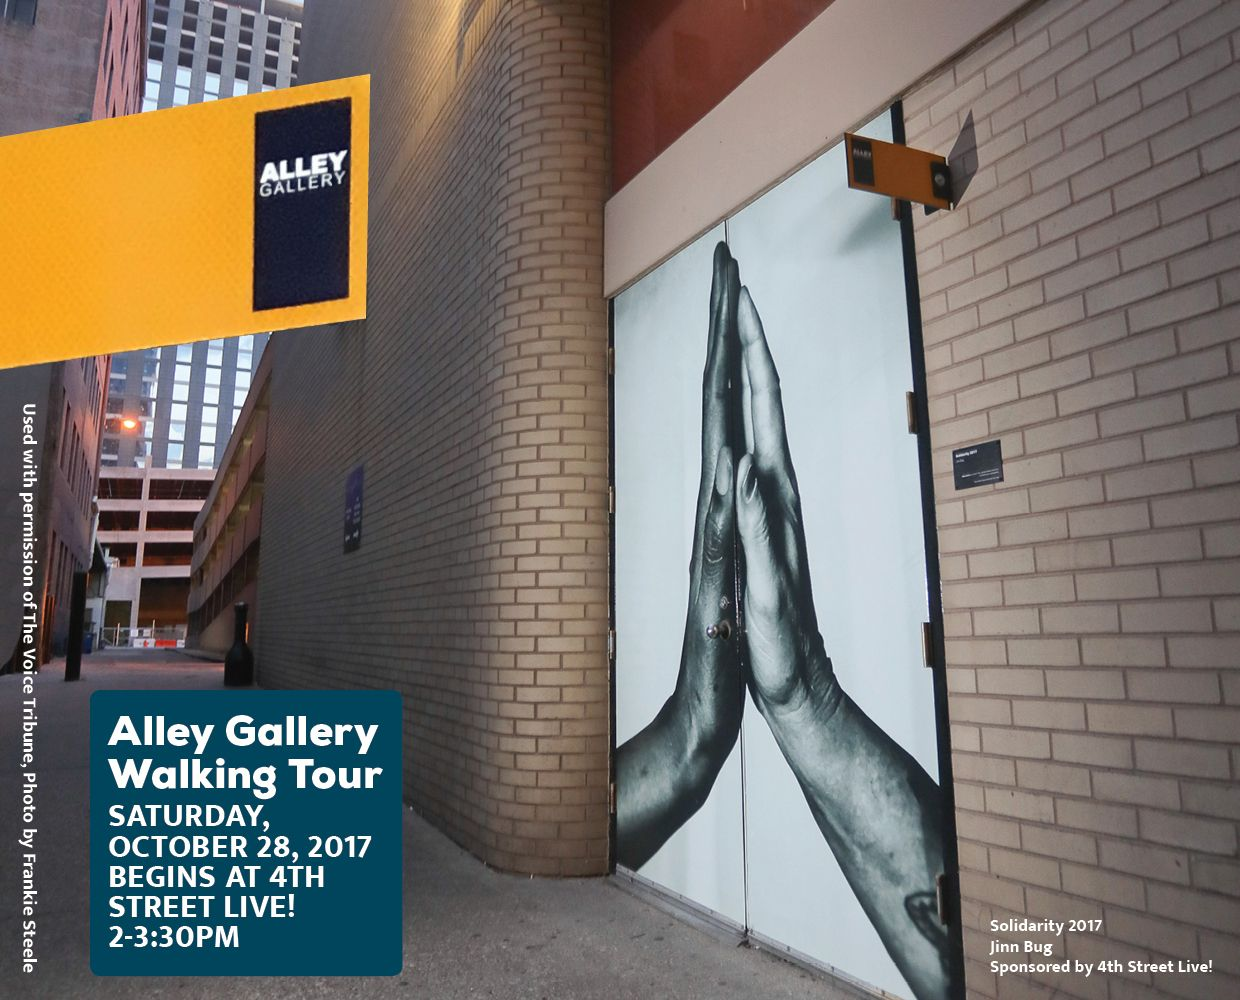 October 28 - Alley Gallery Walking Tour image